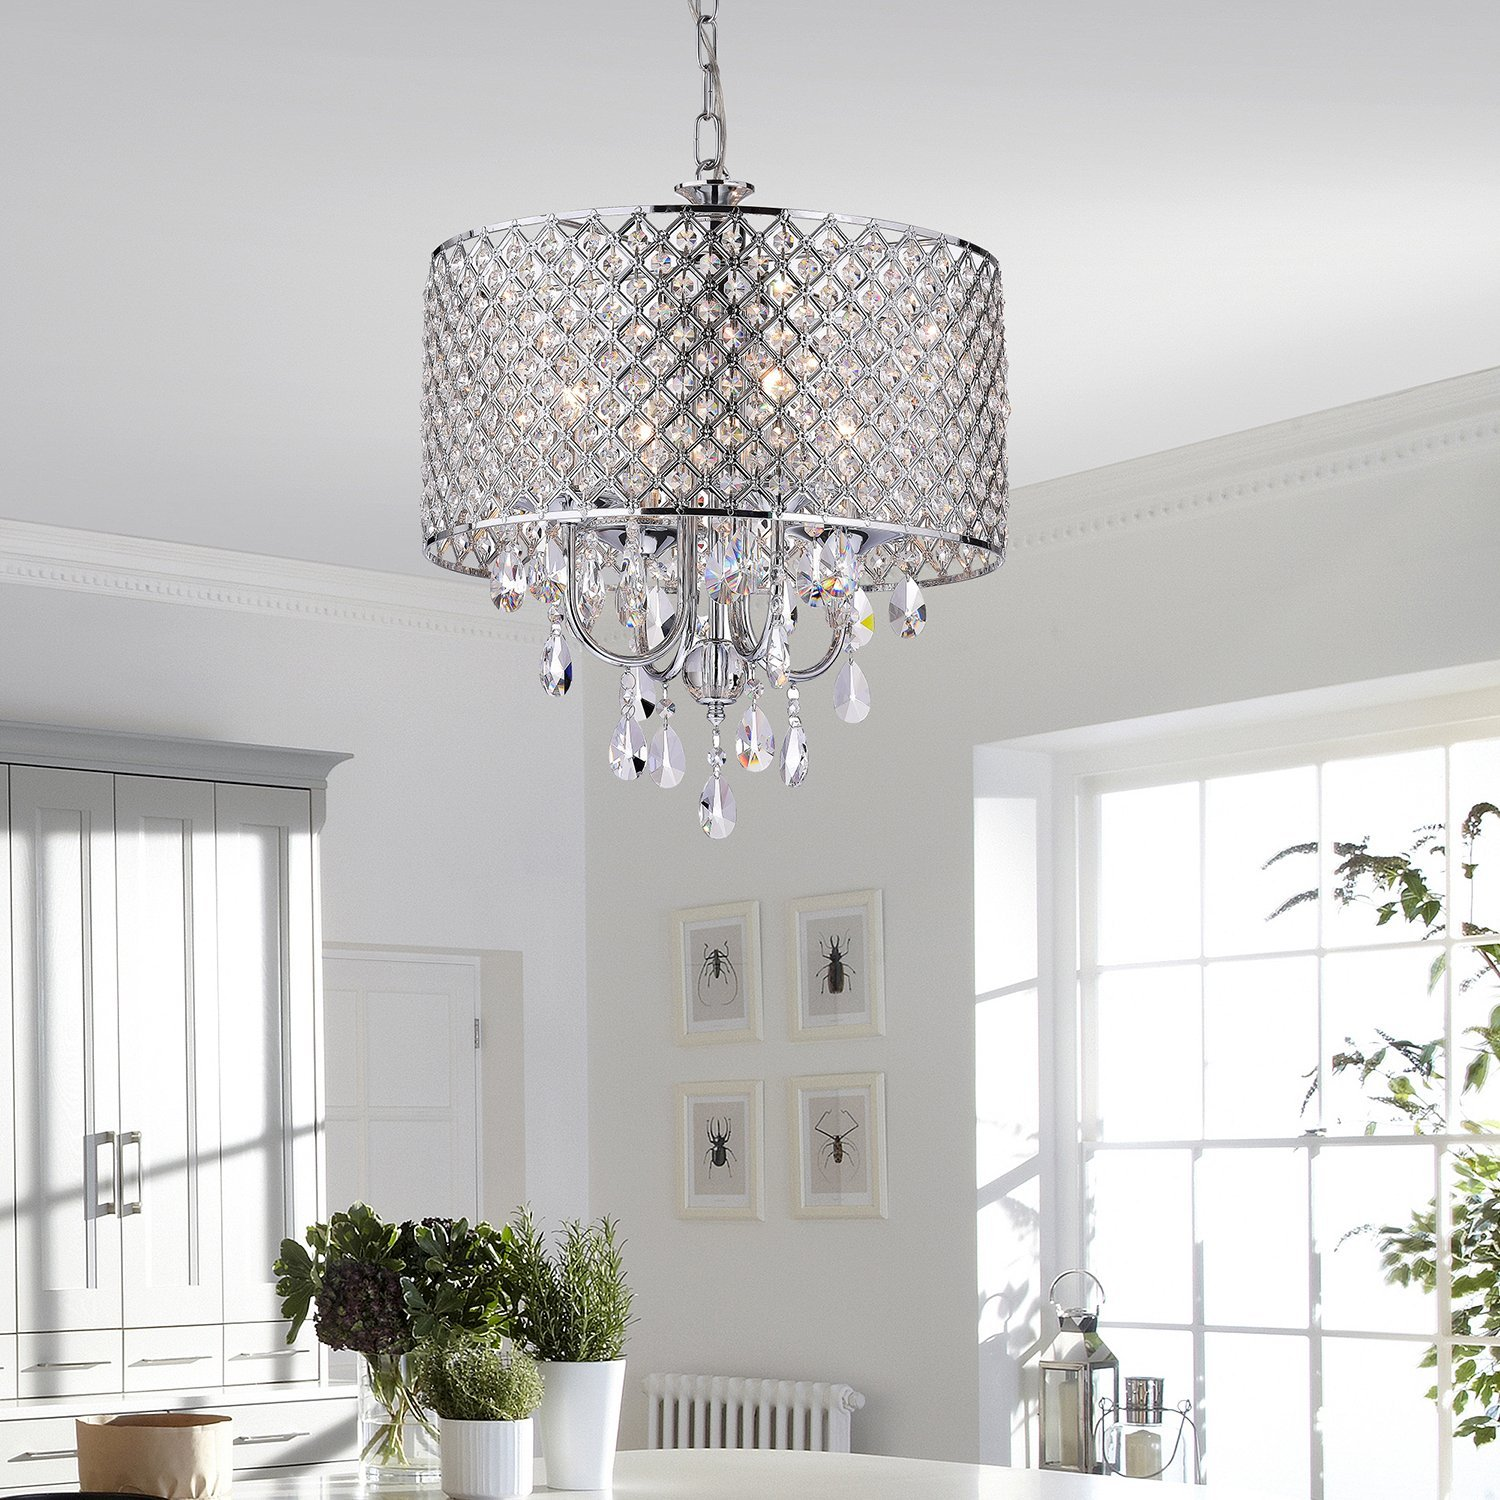 zoom five to productdetail sale ceiling sausalito hover drum troy htm light on pendant